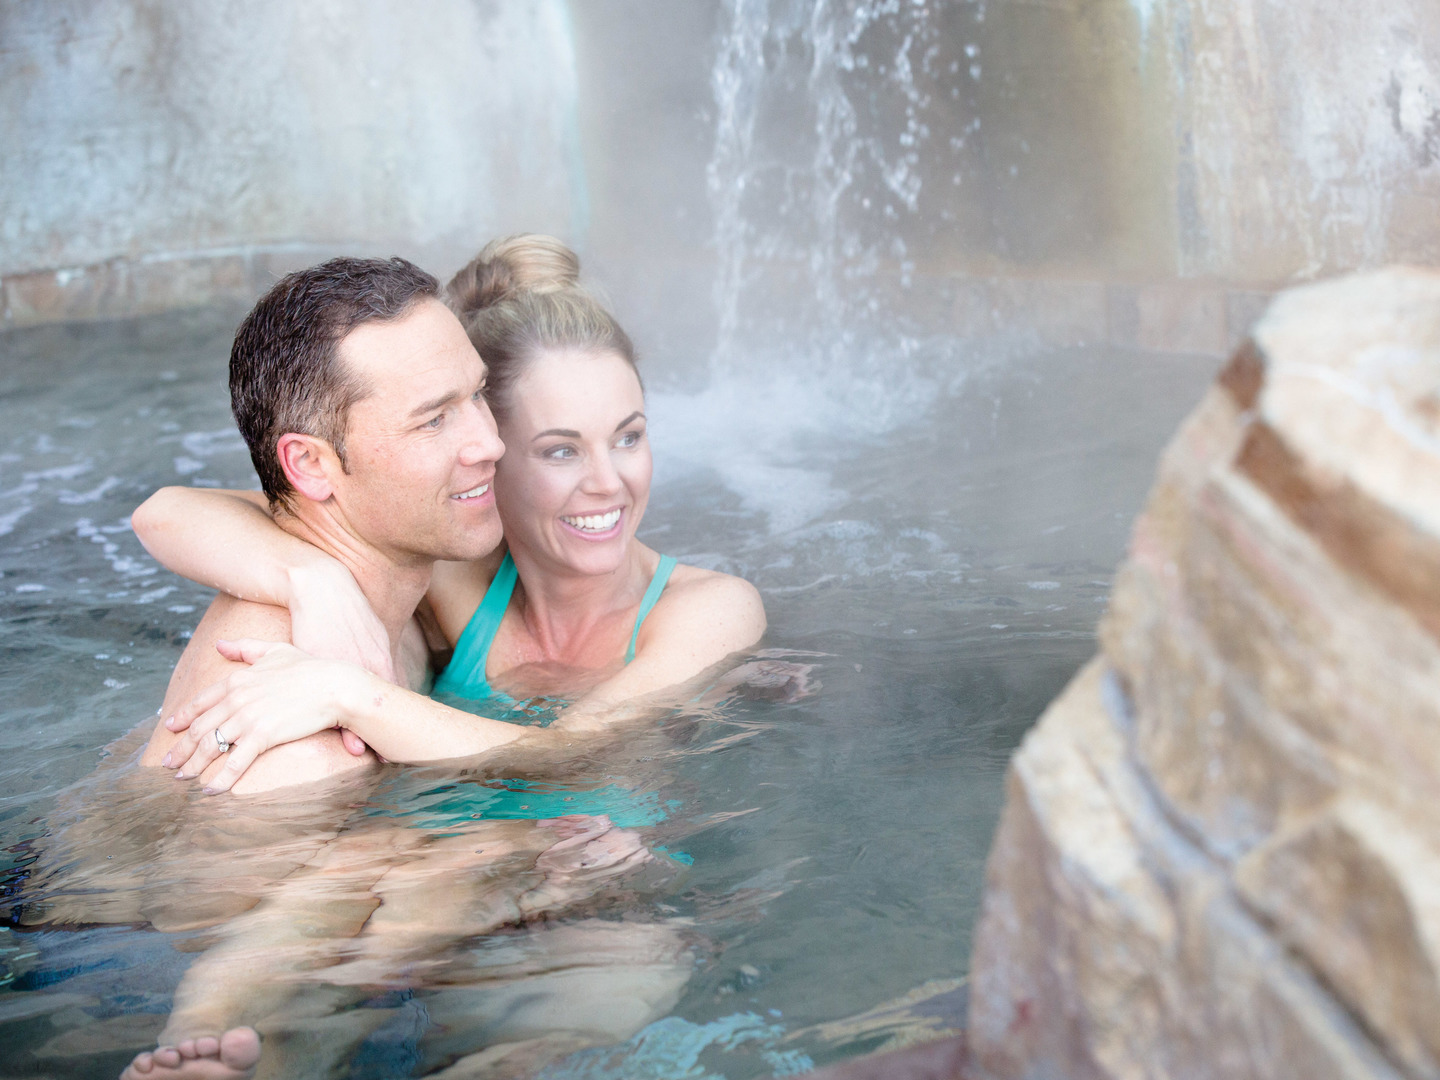 Marriott's MountainSide Hot Tub. Marriott's MountainSide is located in Park City, Utah United States.